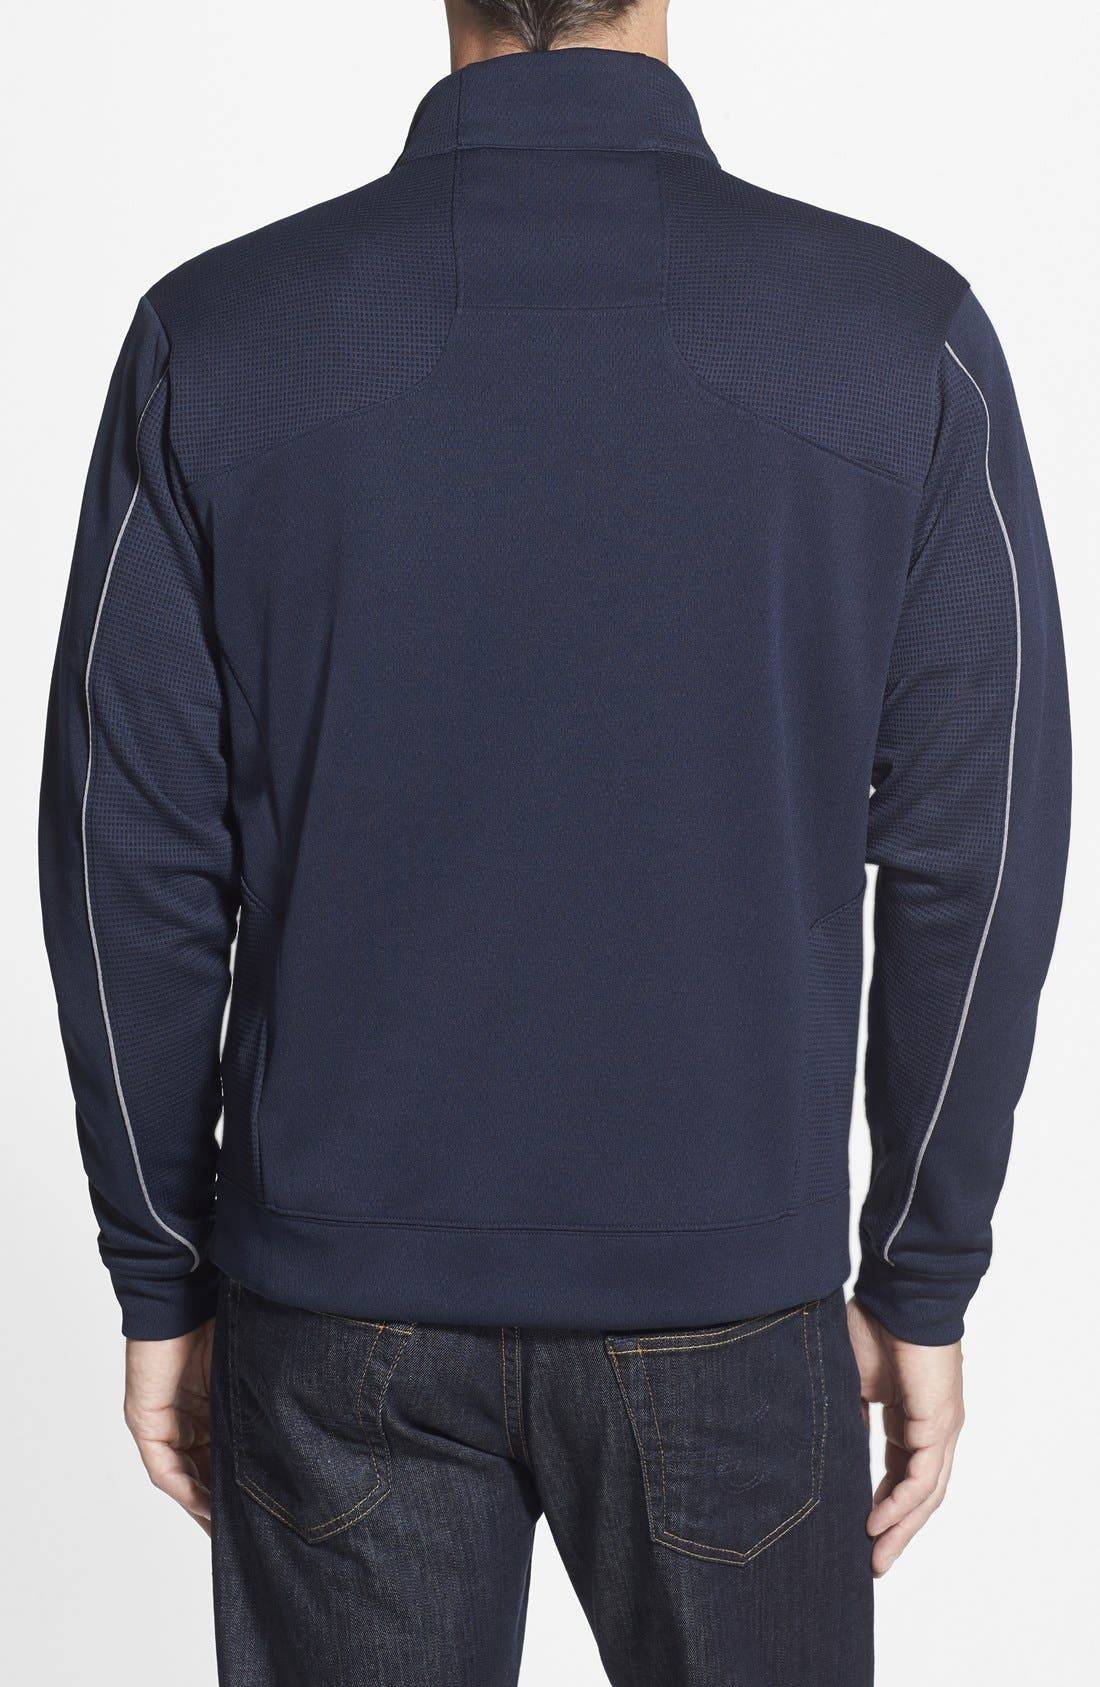 San Diego Chargers - Edge DryTec Moisture Wicking Half Zip Pullover,                             Alternate thumbnail 3, color,                             420